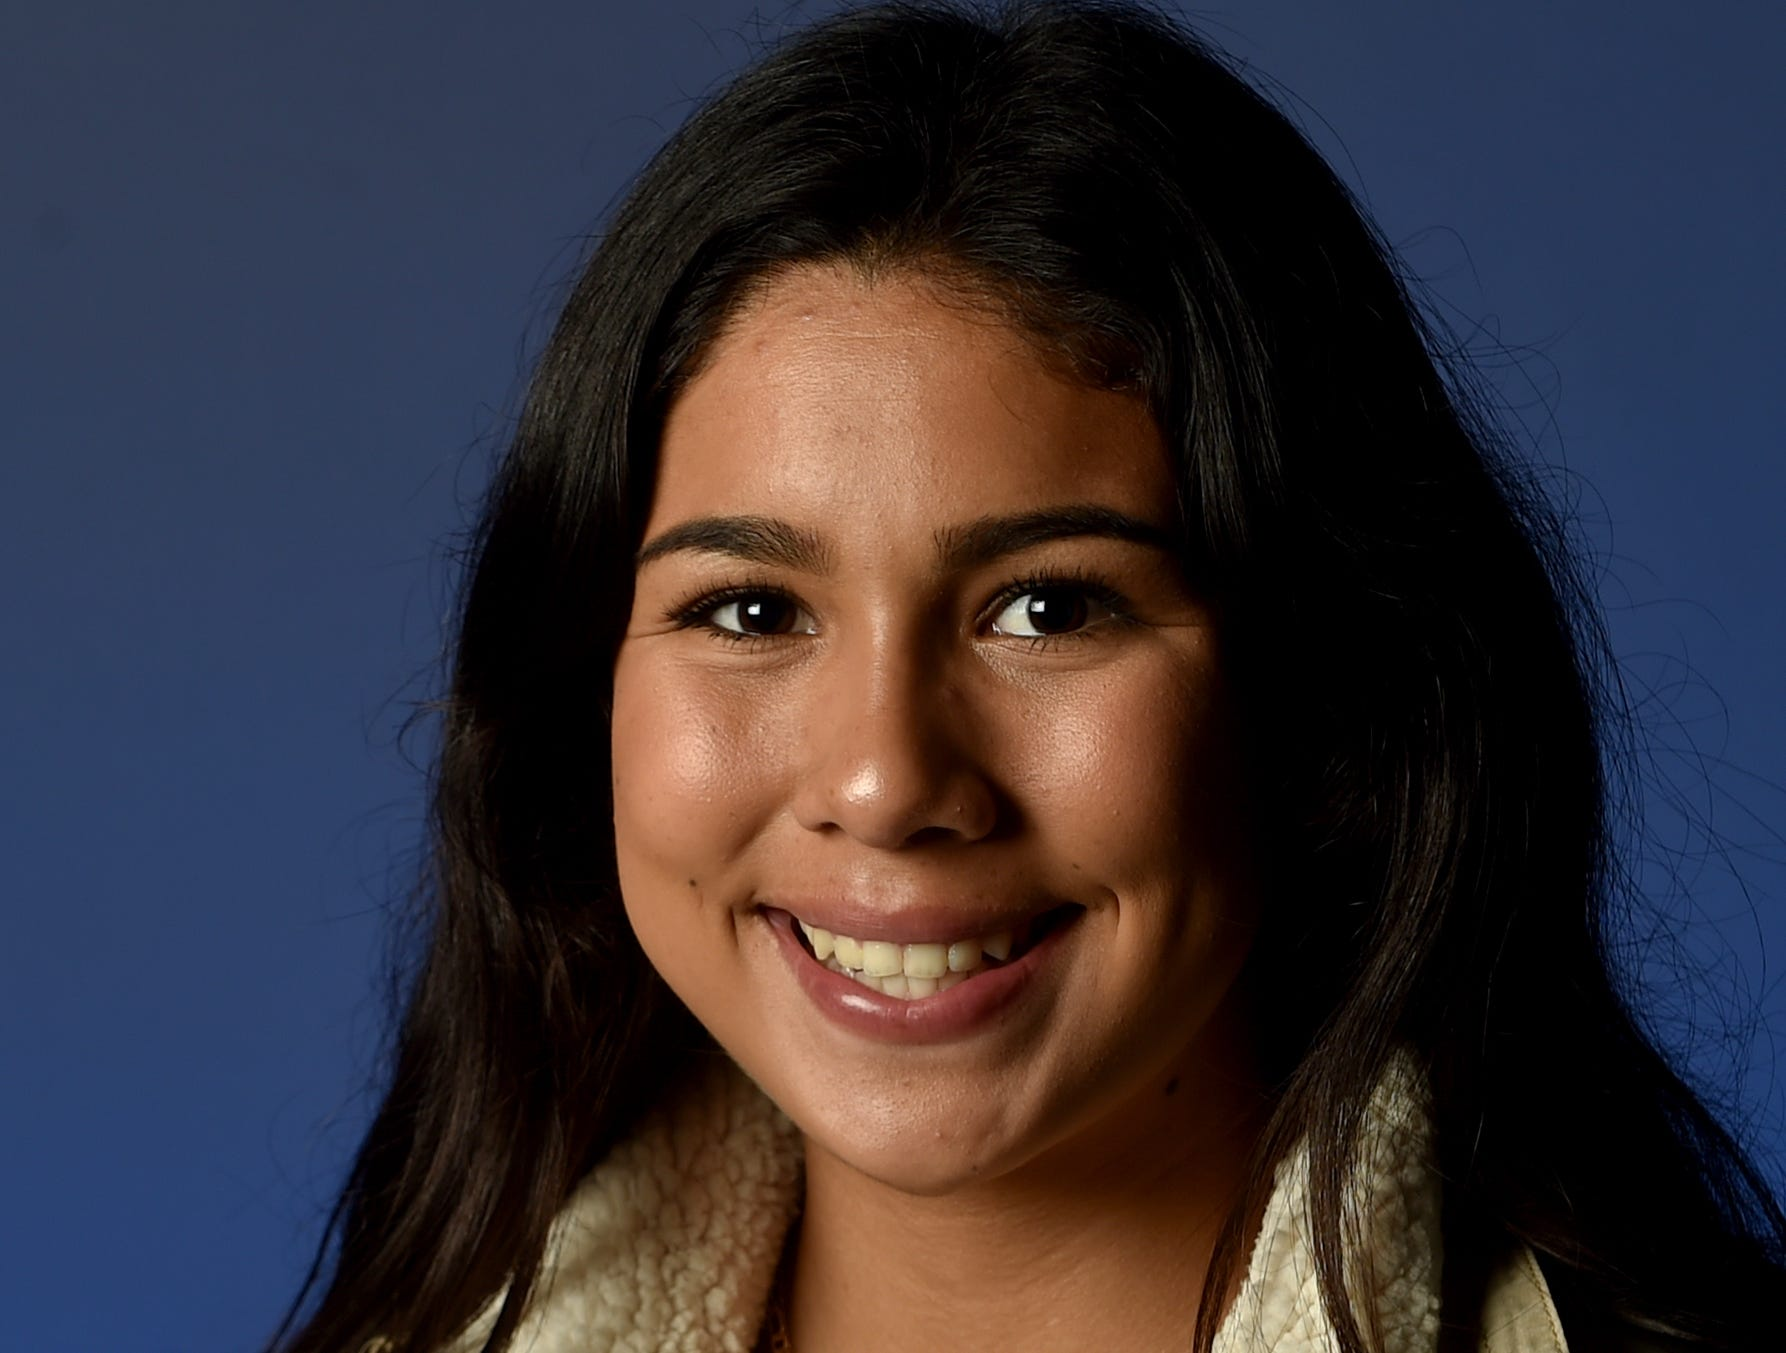 "ARELY LOPEZ, Pacifica: The 5-foot-2 junior was the two-way force in the midfield that guided the Tritons to a 10-win season. She had one goal and three assists, while spending time at both defensive and creative midfield positions. Lopez also plays club for Eagles S.C. in the Development Player League. She lists ""soccer and more soccer"" as her hobby. She watches ""The Office,"" listens to Beyonce and enjoys eating lasagna. ""The Notebook"" is her favorite movie. She roots for FC Barcelona and lists superstar Lionel Messi as her favorite athlete."